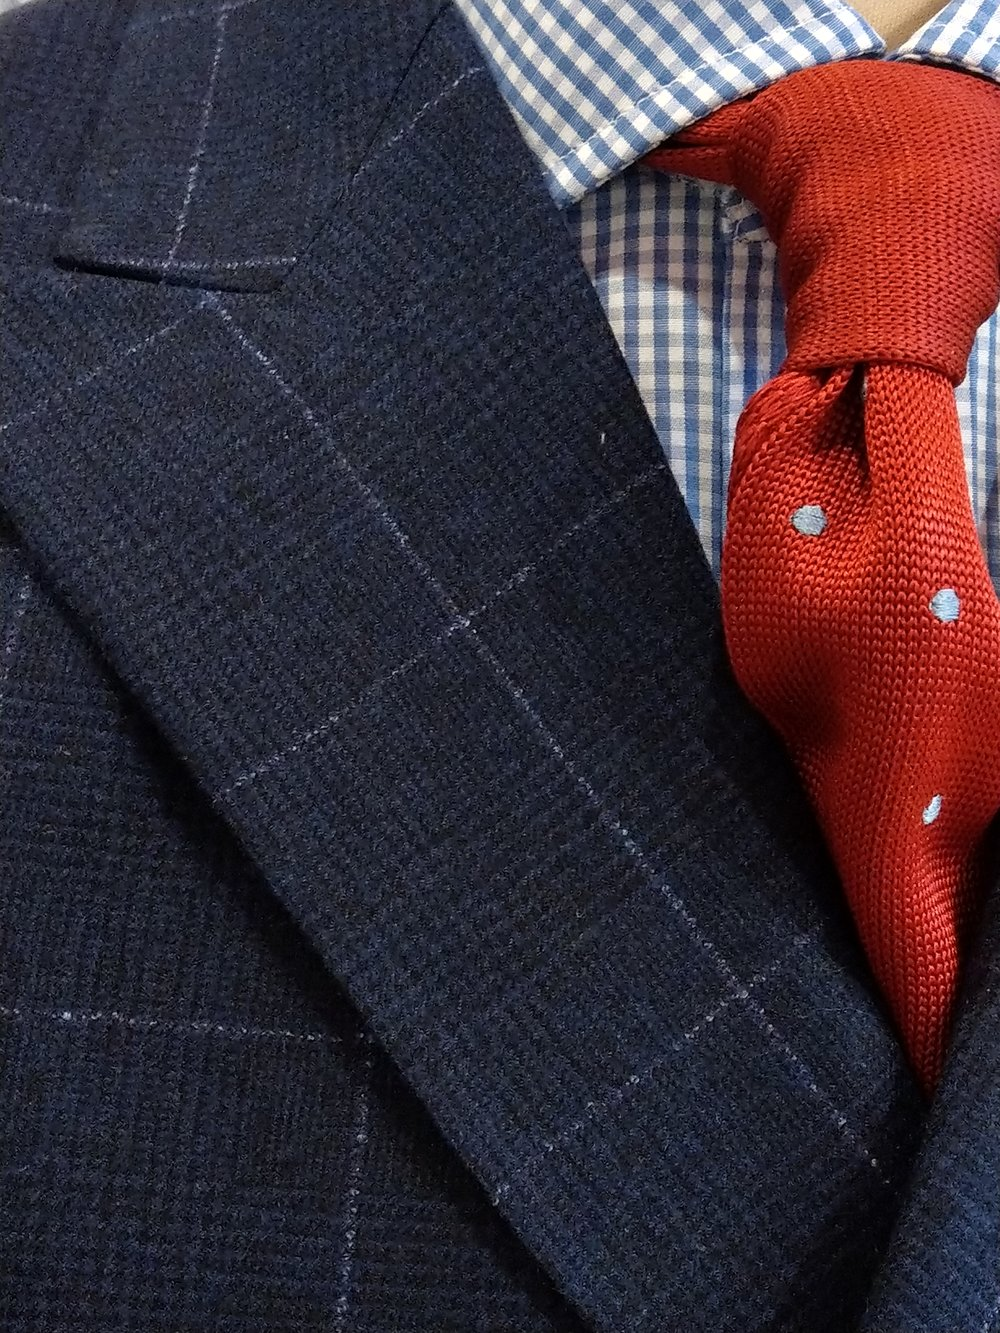 susannah-hall-tailors-bespoke-dormeuil-flannel-over-check-double-breasted-uk-made-britain.jpg